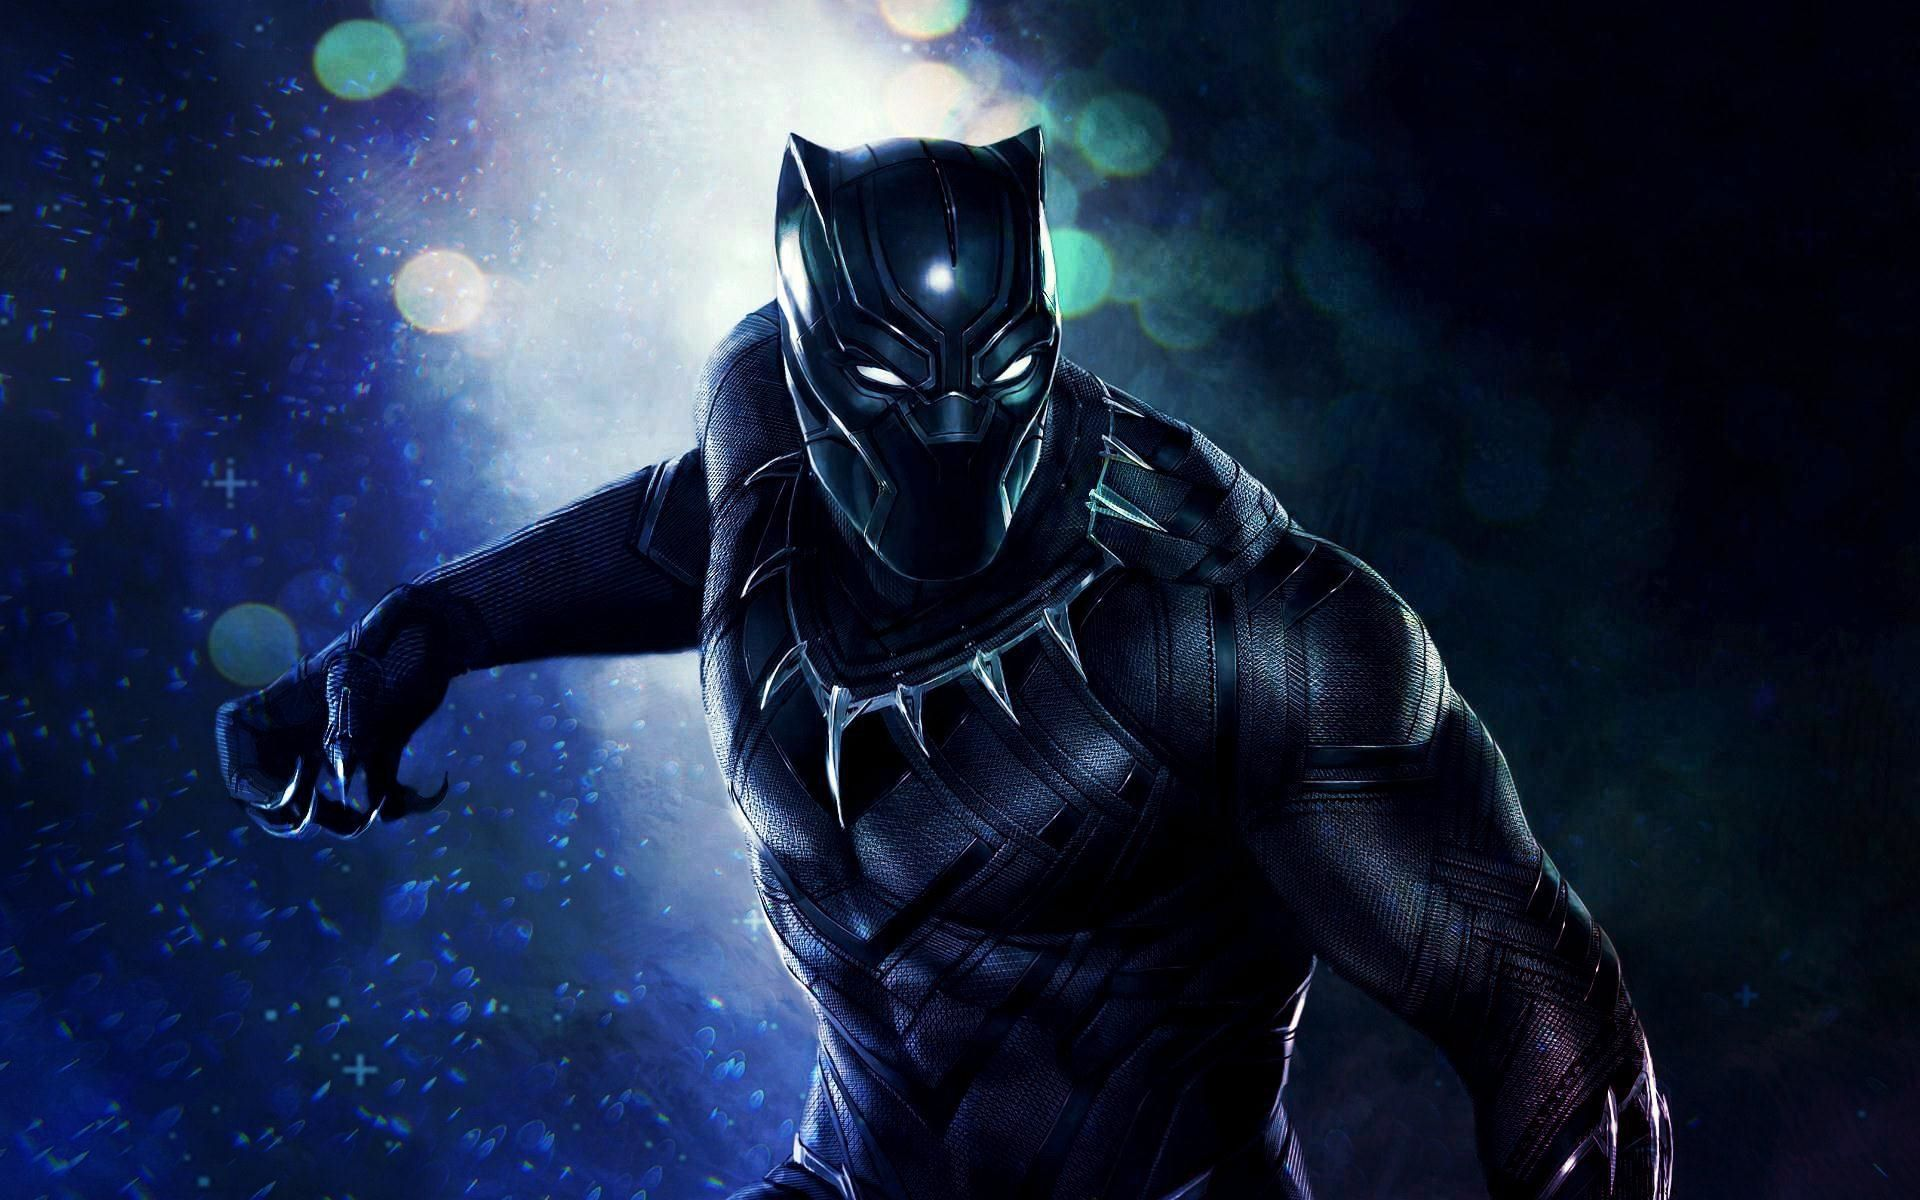 Black Panther Hd Wallpaper